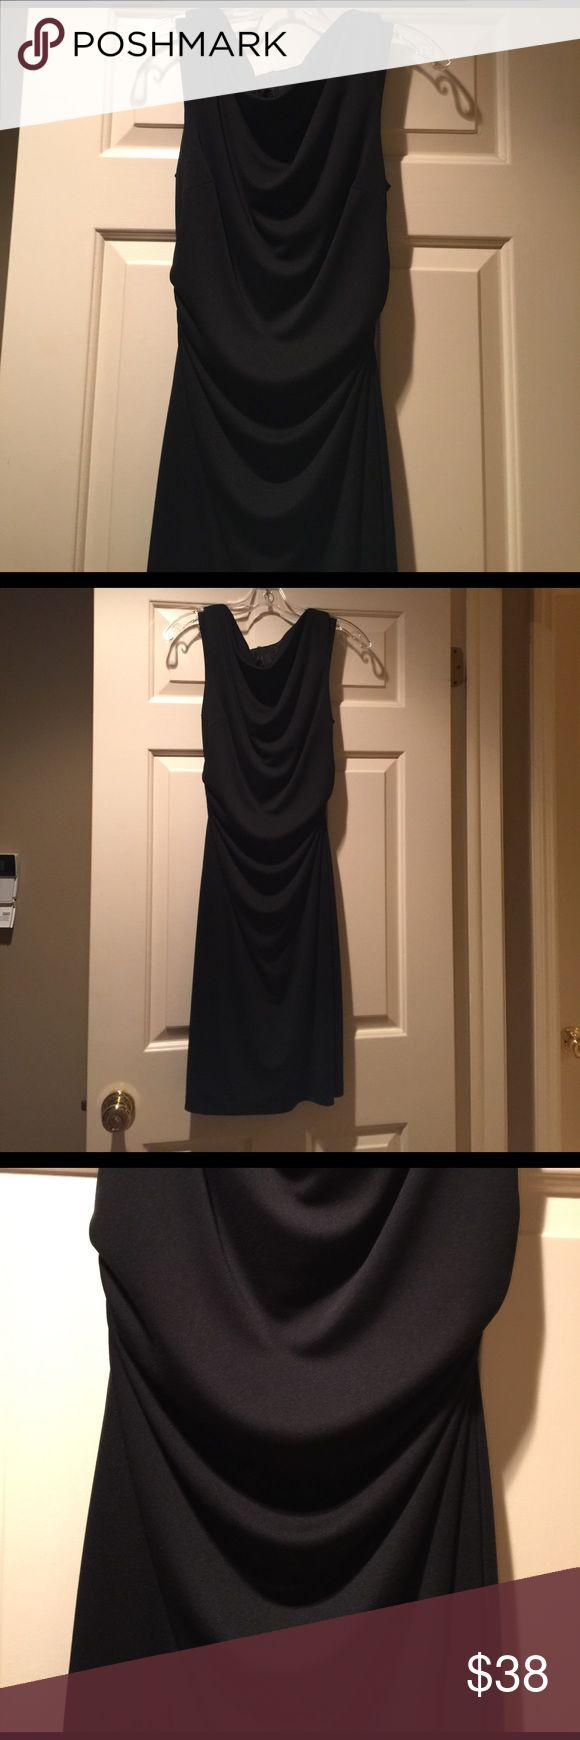 NWOT David Meister Elegant Black Dress - 6 Brand New Without Tags David Meister Black Elegant Dress that will carry you for years to many formal occasions! Size 6 with a draping style that is feminine.  Comfortable to wear as well. David Meister Dresses